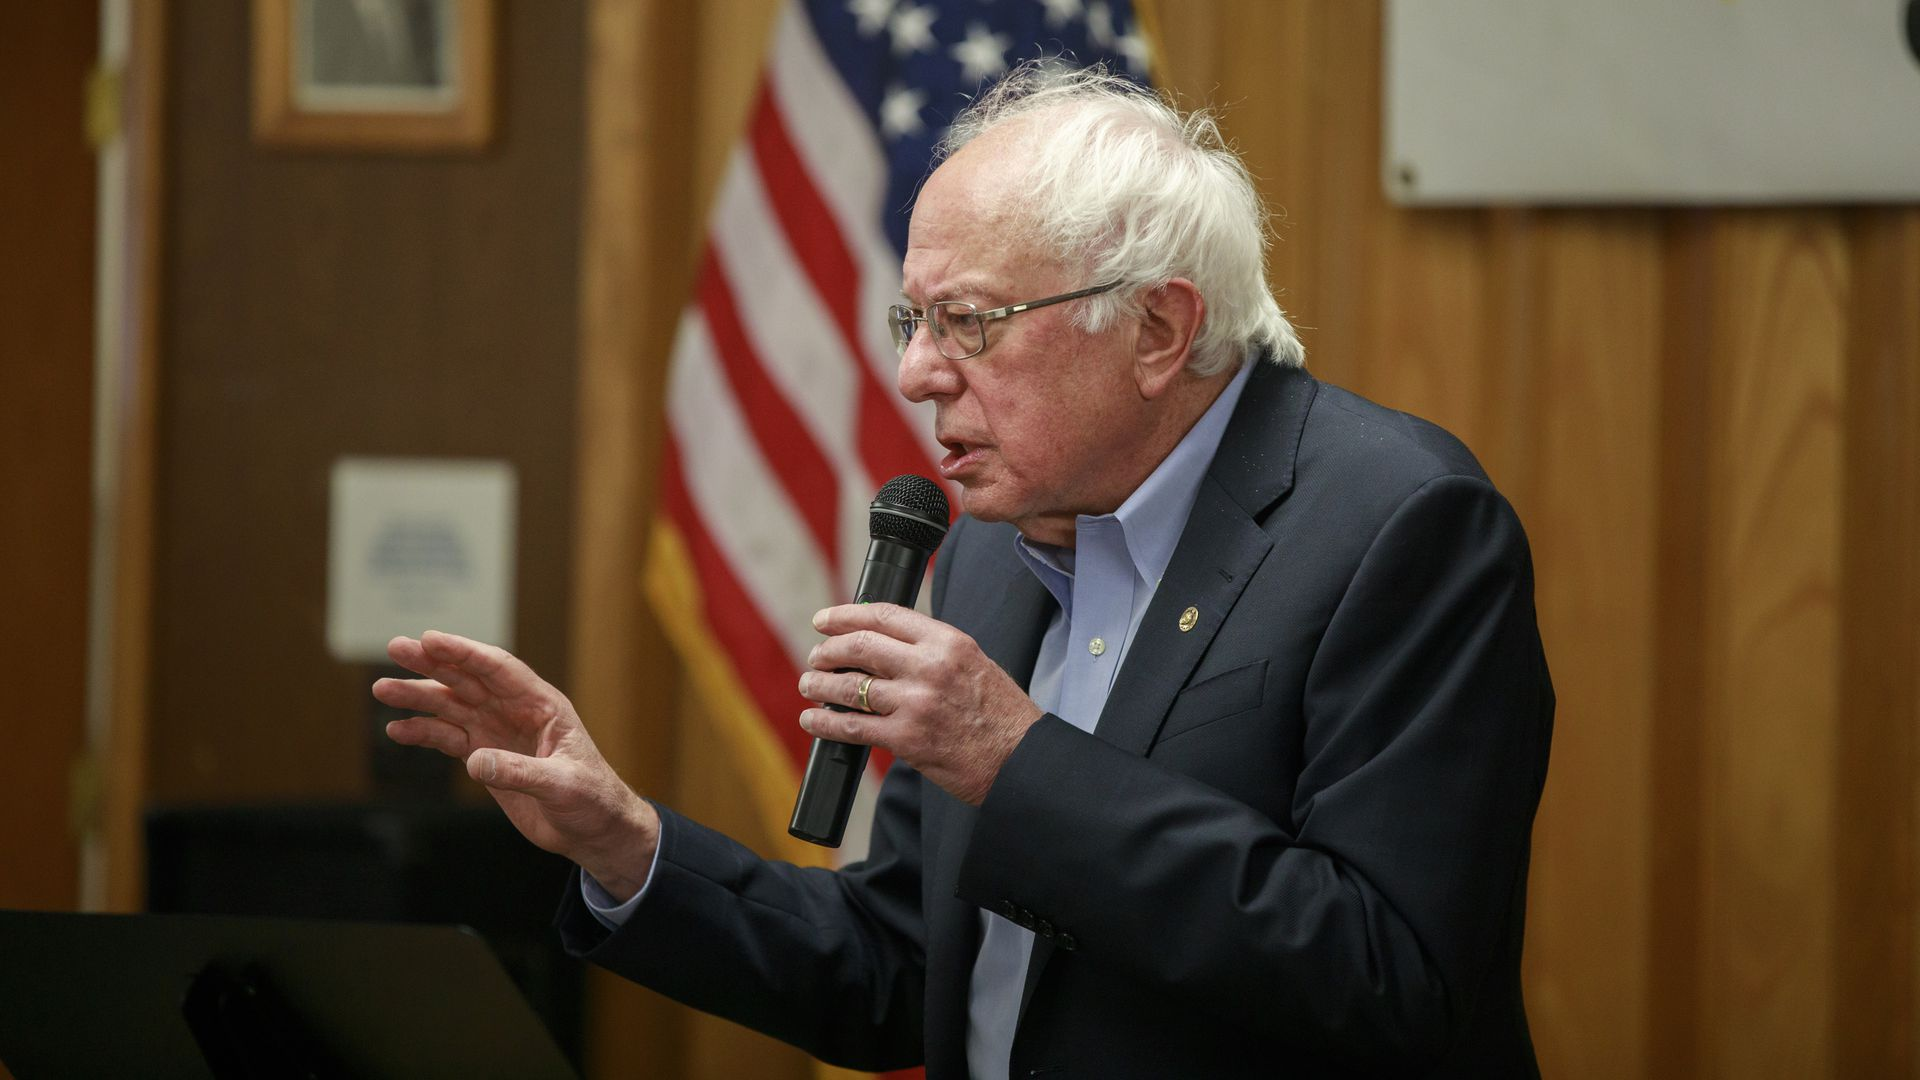 In this image, Bernie Sanders speaks into a microphone with an American flag behind him.